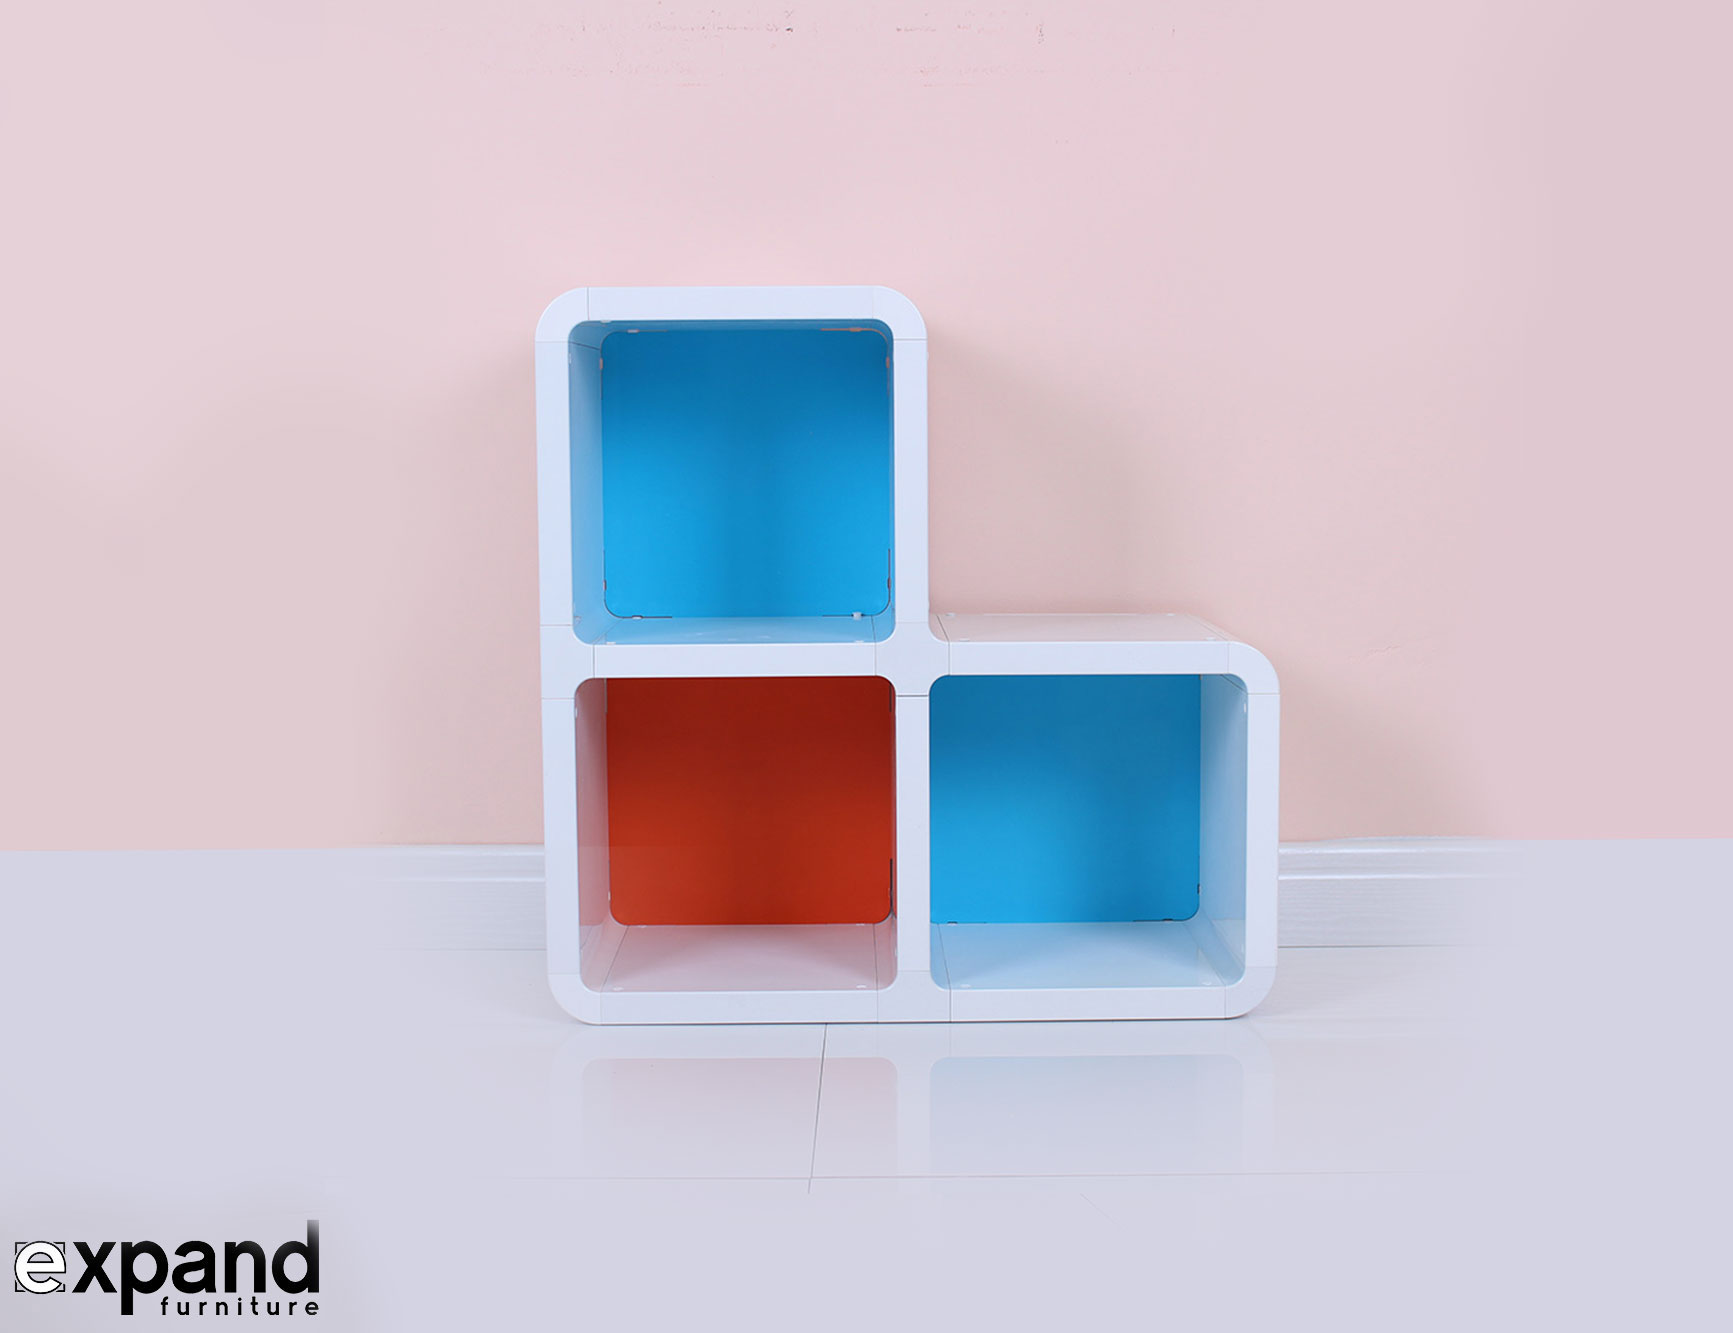 Bunk Beds With Desks : Corner Step bookshelf with 3 cubes and colors for a unique home from www.tehroony.com size 1733 x 1333 jpeg 74kB